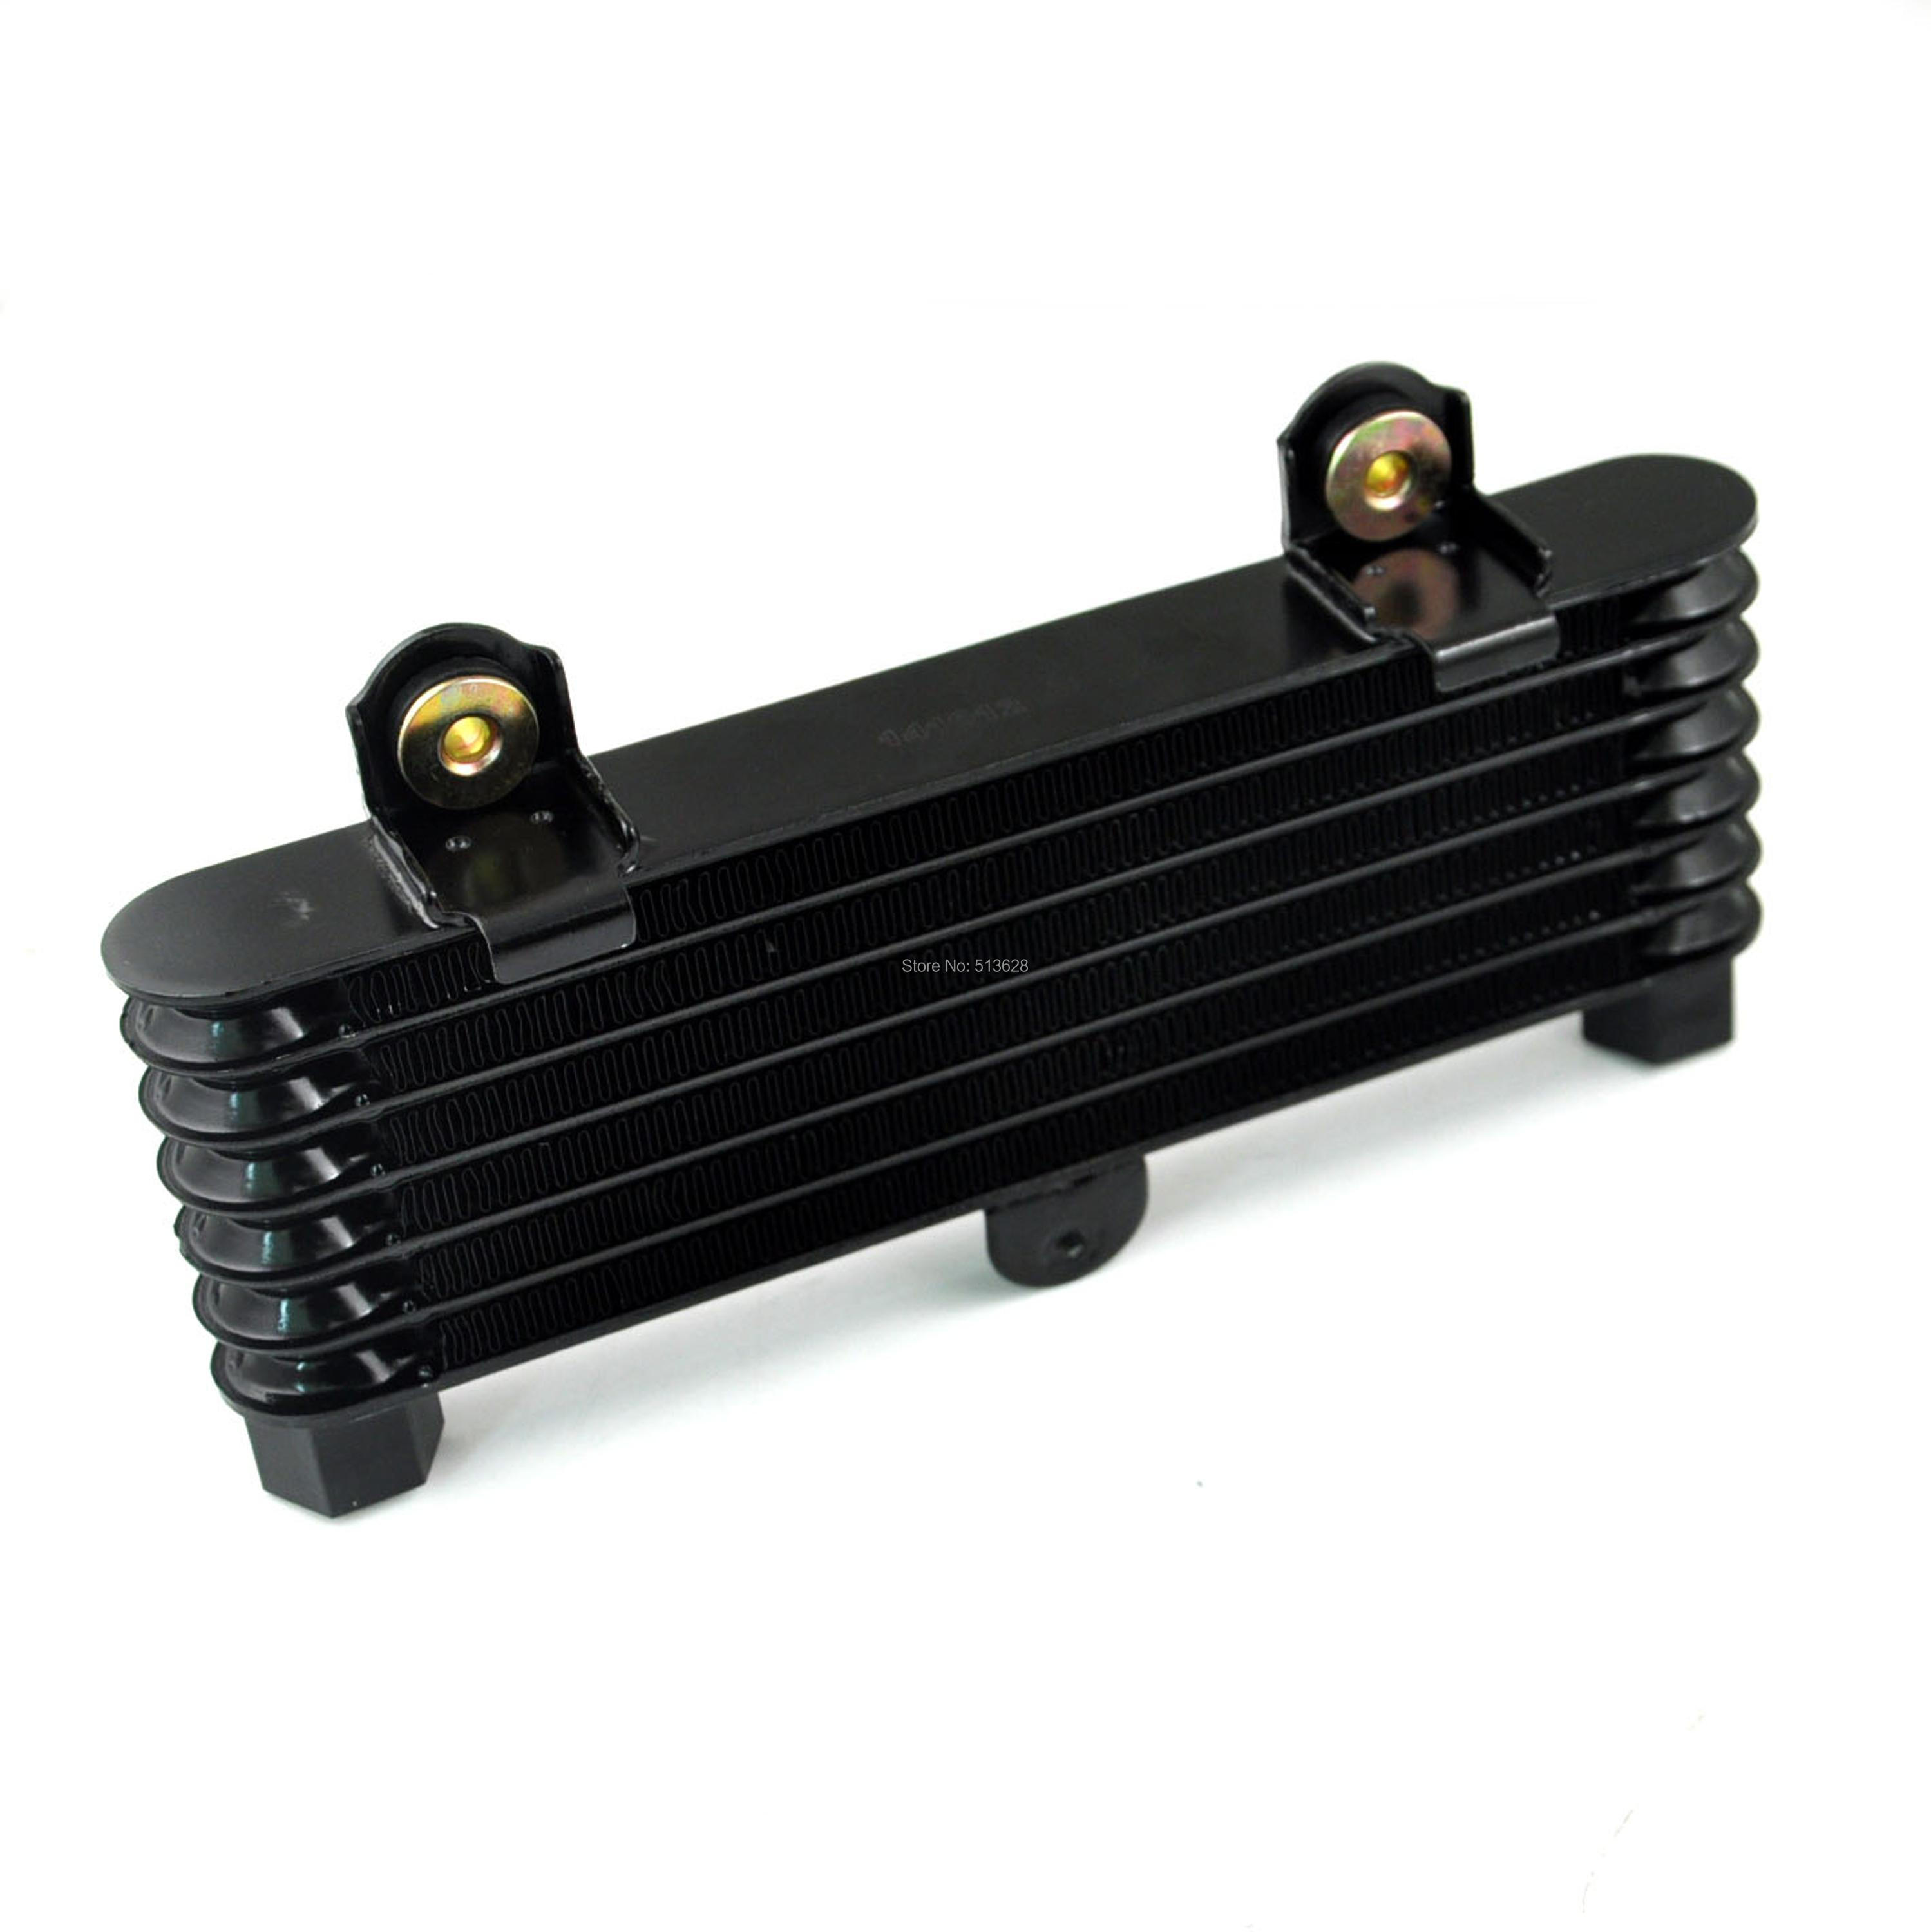 LOPOR Motorcycle Oil Cooler for Suzuki TL1000S 1997 1998 1999 2000 2001 Radiator lopor for suzuki bandit gsf600 1995 1996 1997 1998 1999 motorcycle aluminium oil cooler radiator black